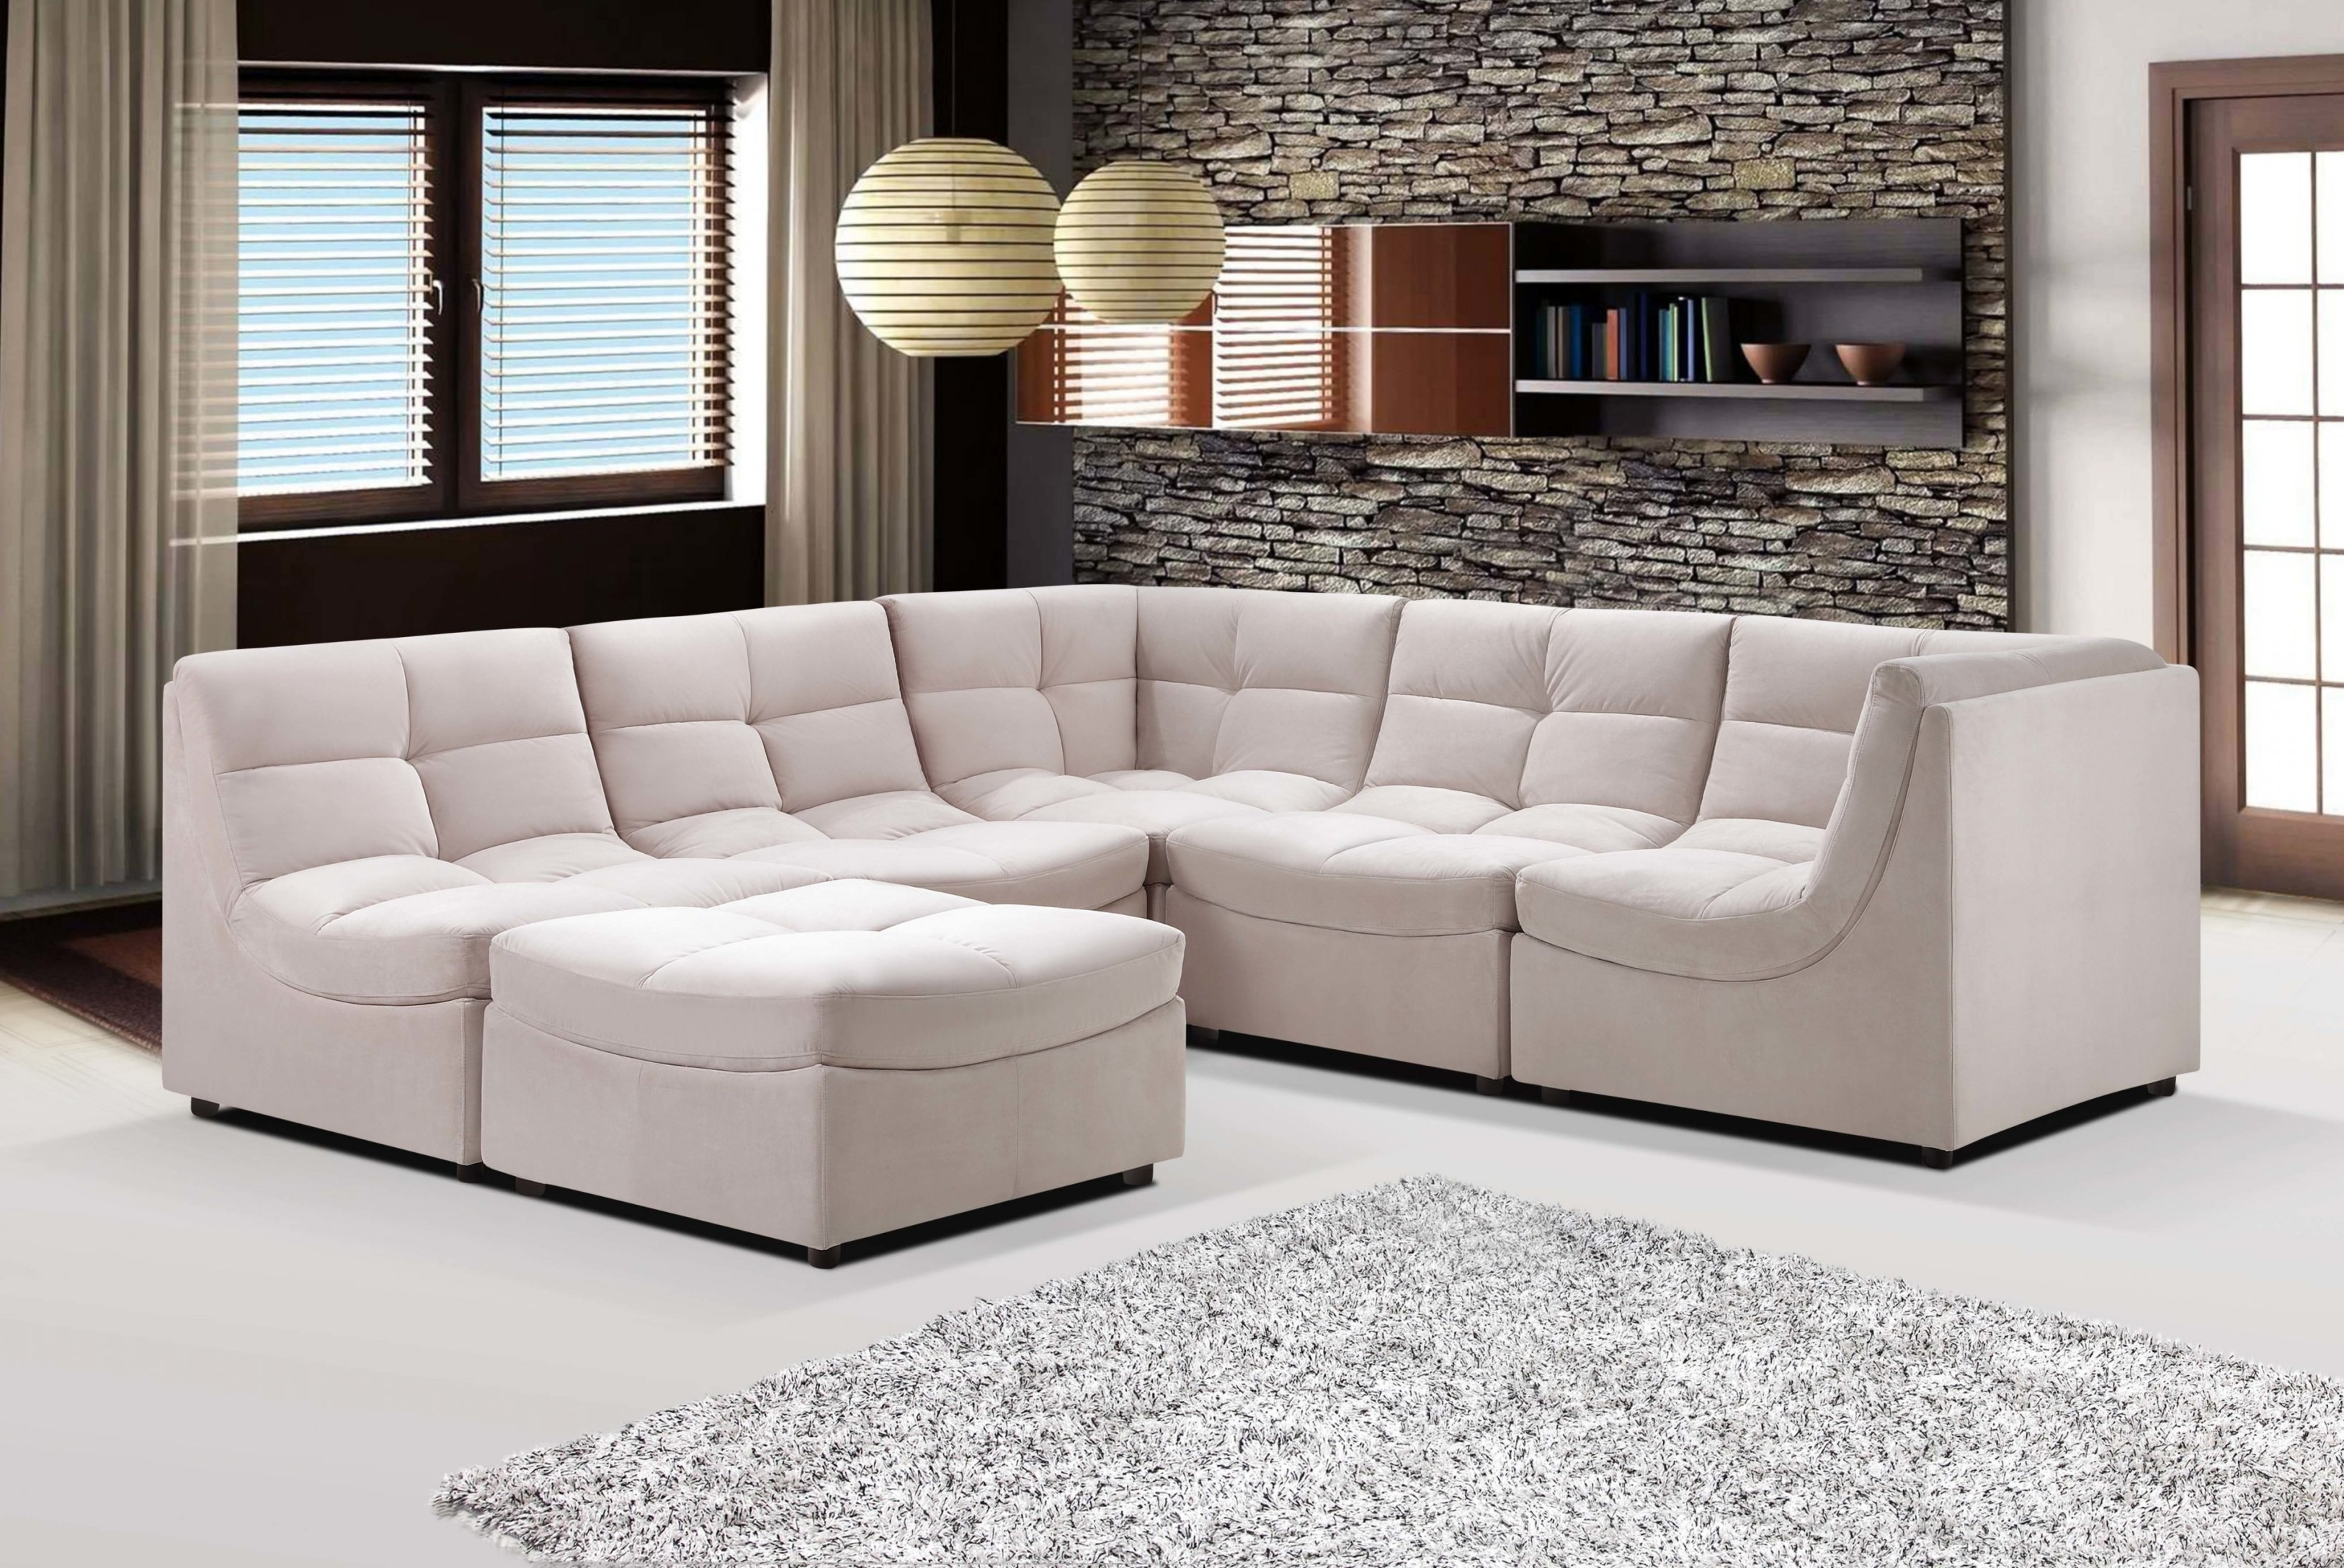 Small Modular Sectional Sofa 21 For Your Sofa Sectionals For Cloud For Current Small Modular Sectional Sofas (View 12 of 20)